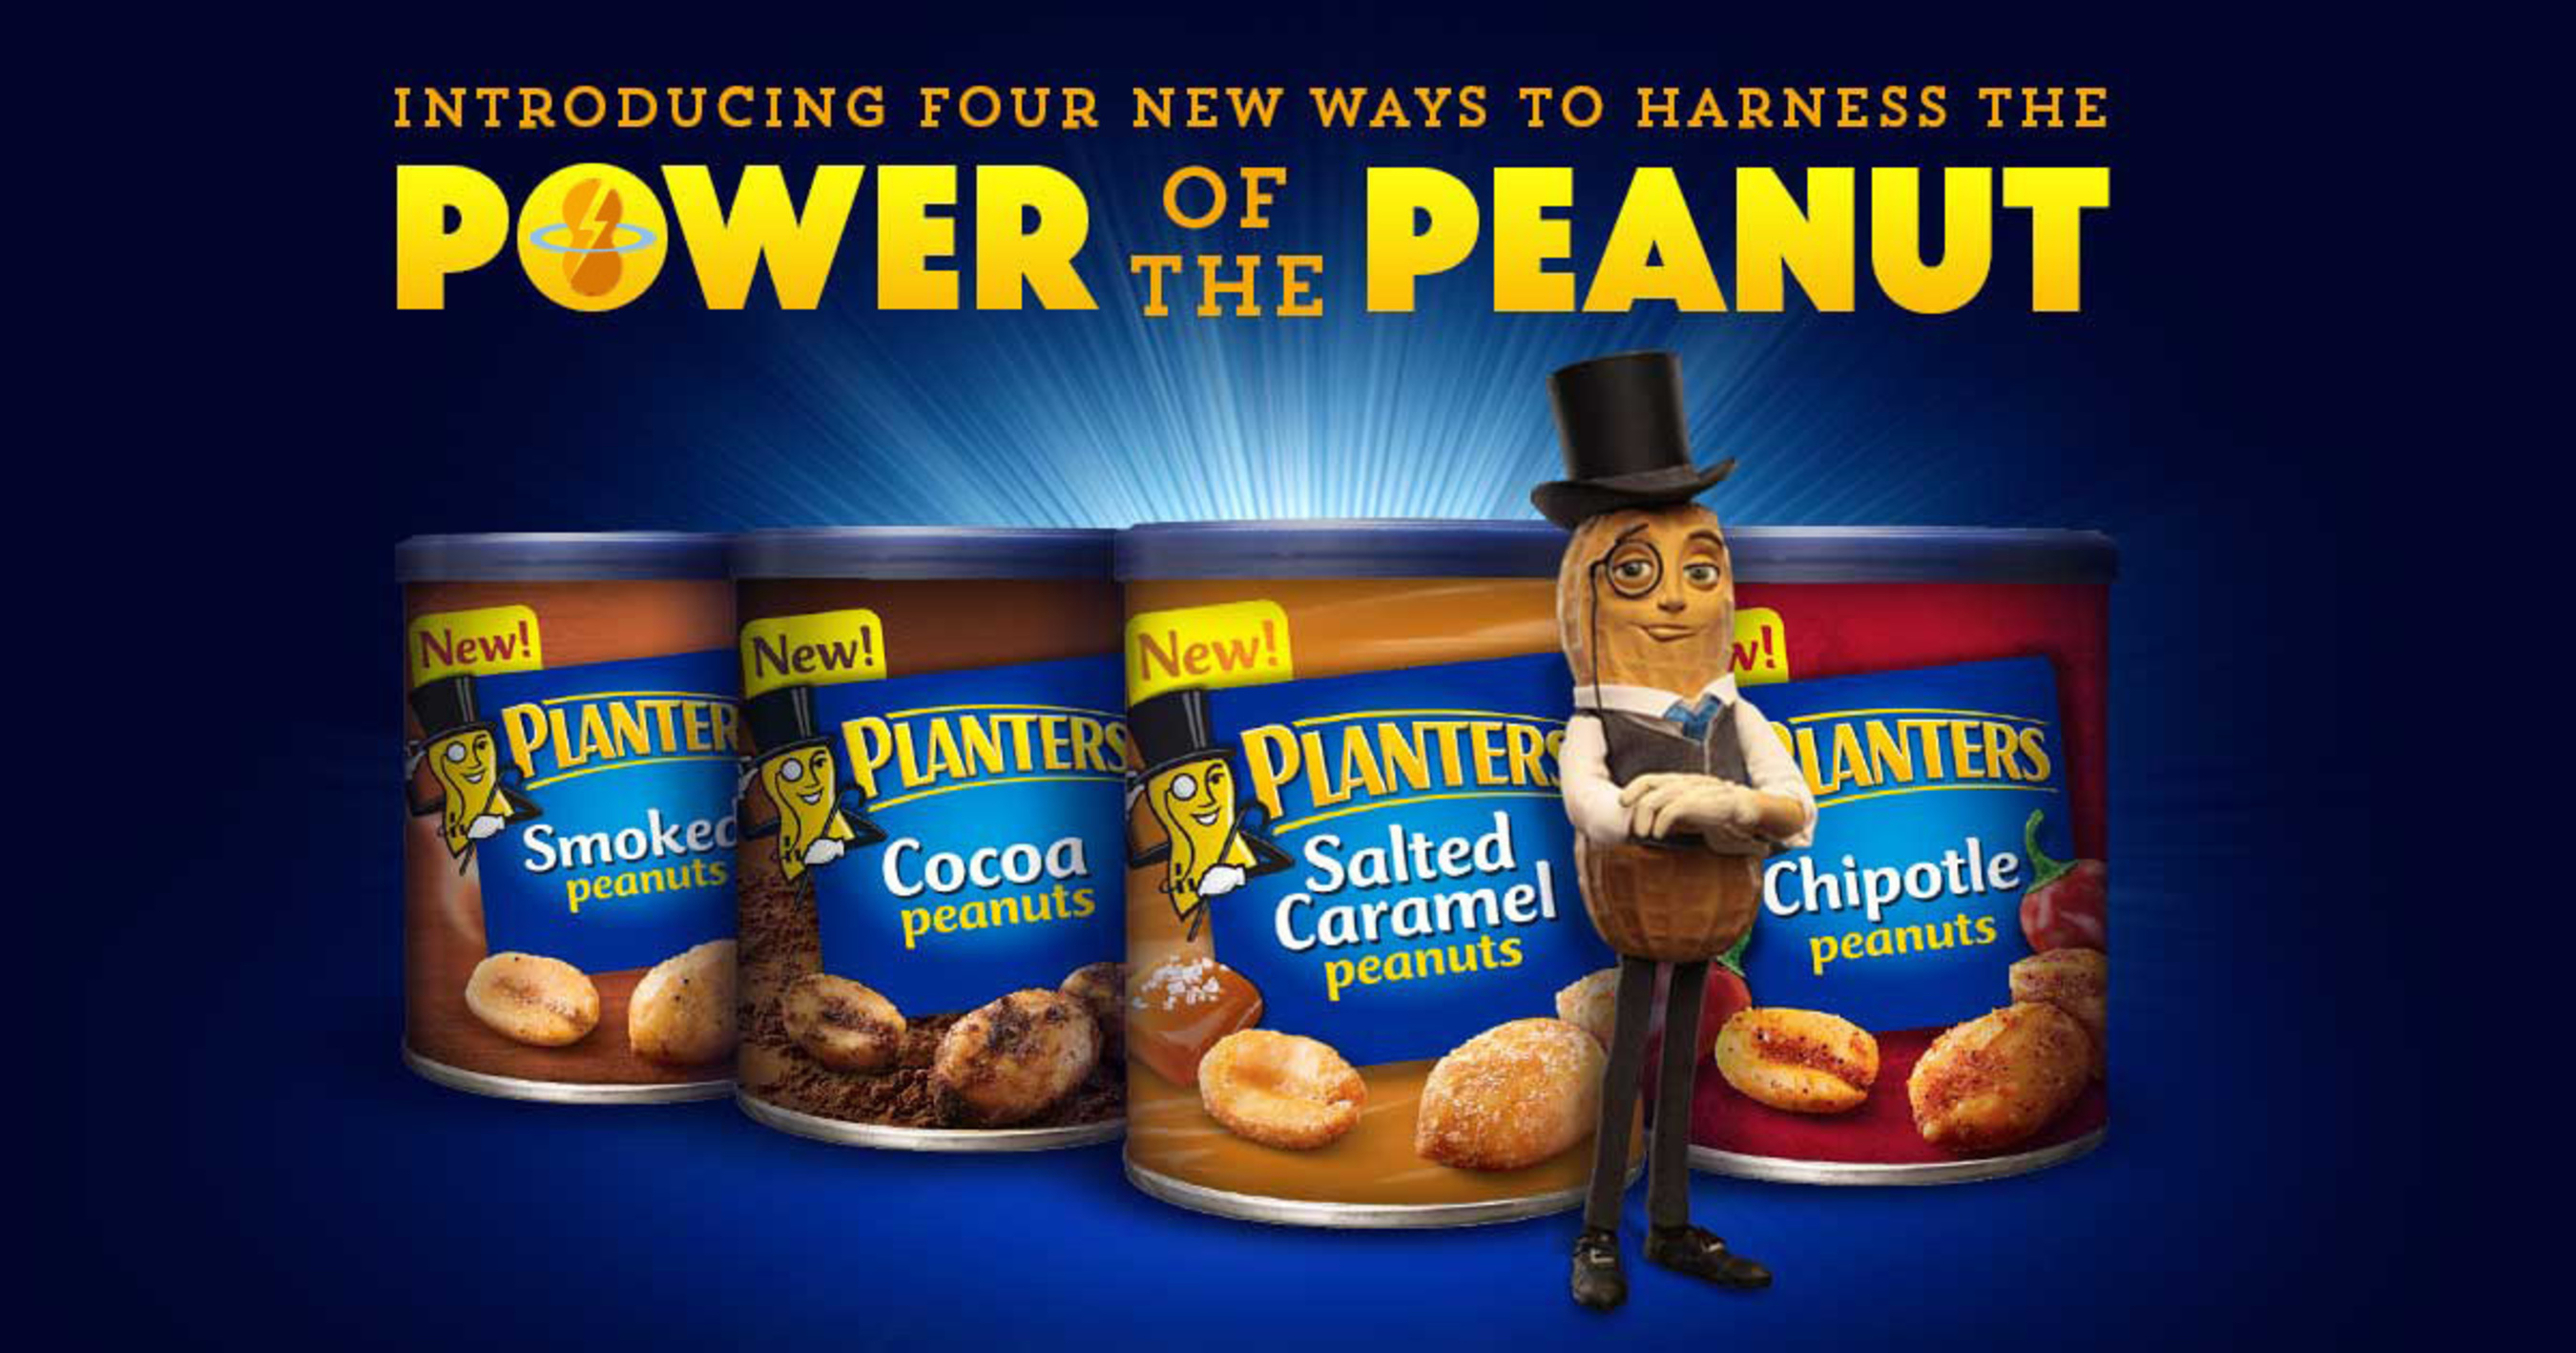 Introducing four new ways to Harness the Power of the Peanut (PRNewsFoto/Planters)